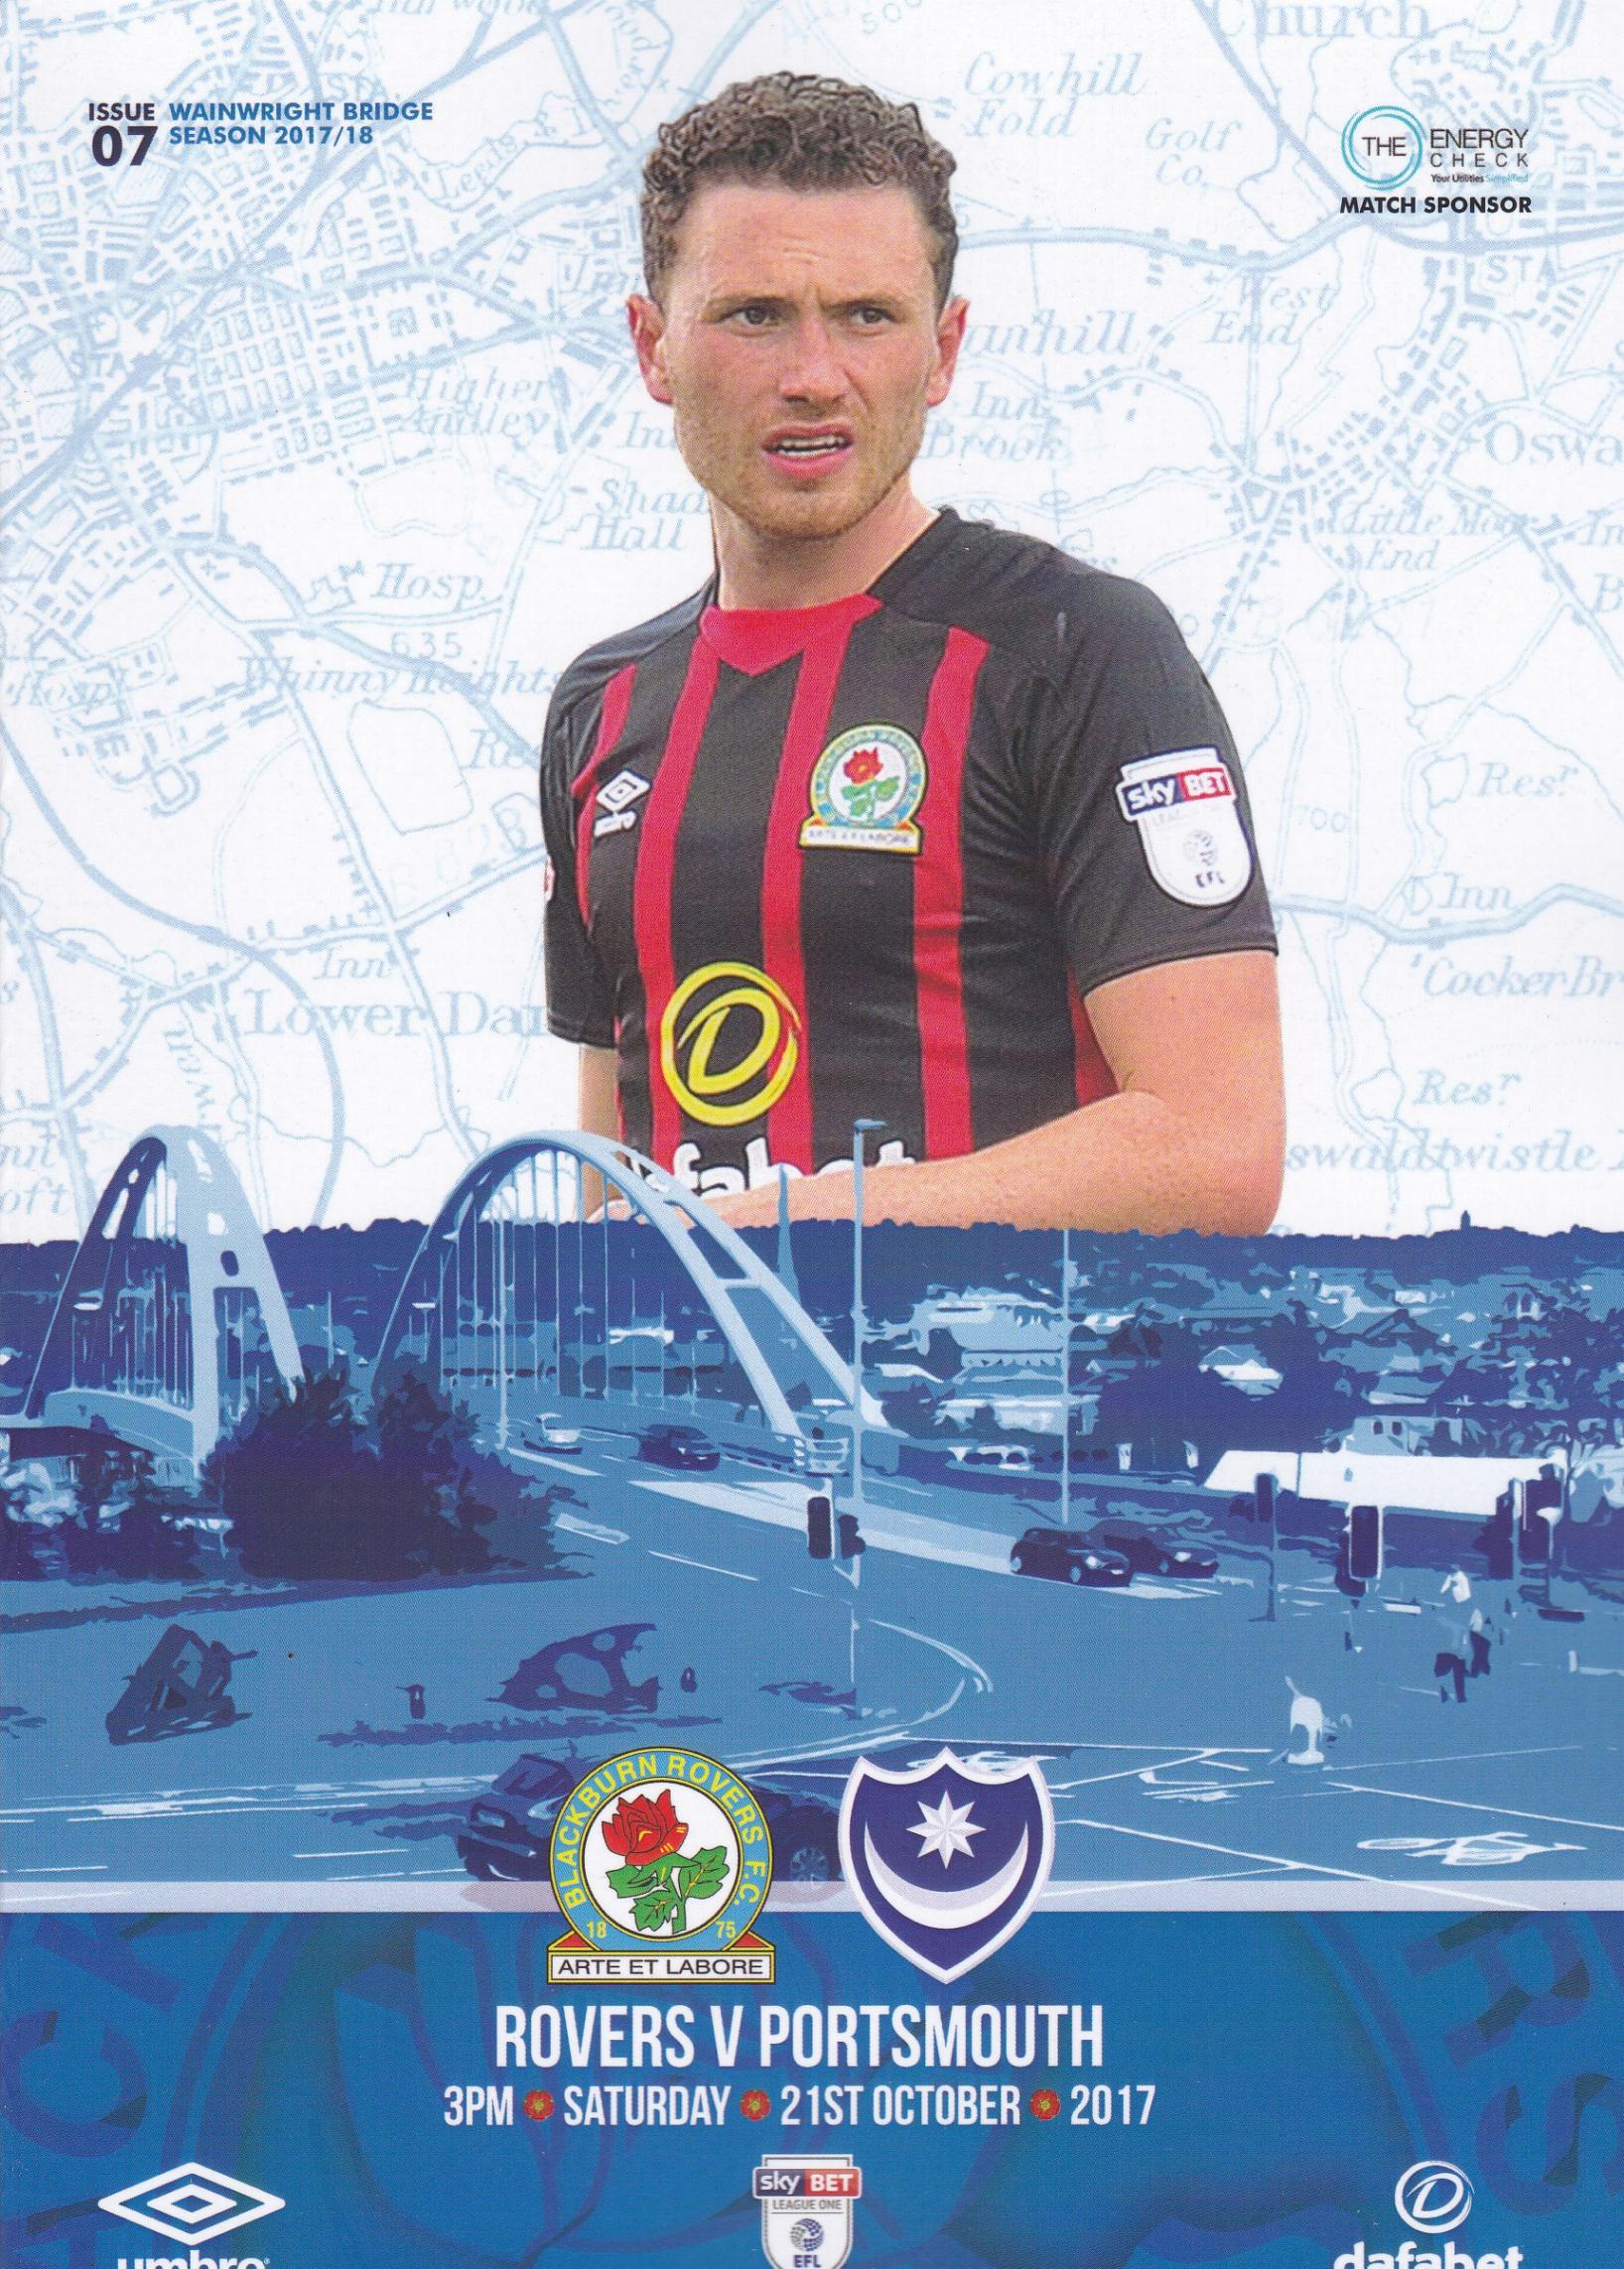 BLACKBURN ROVERS v PORTSMOUTH 2017/18